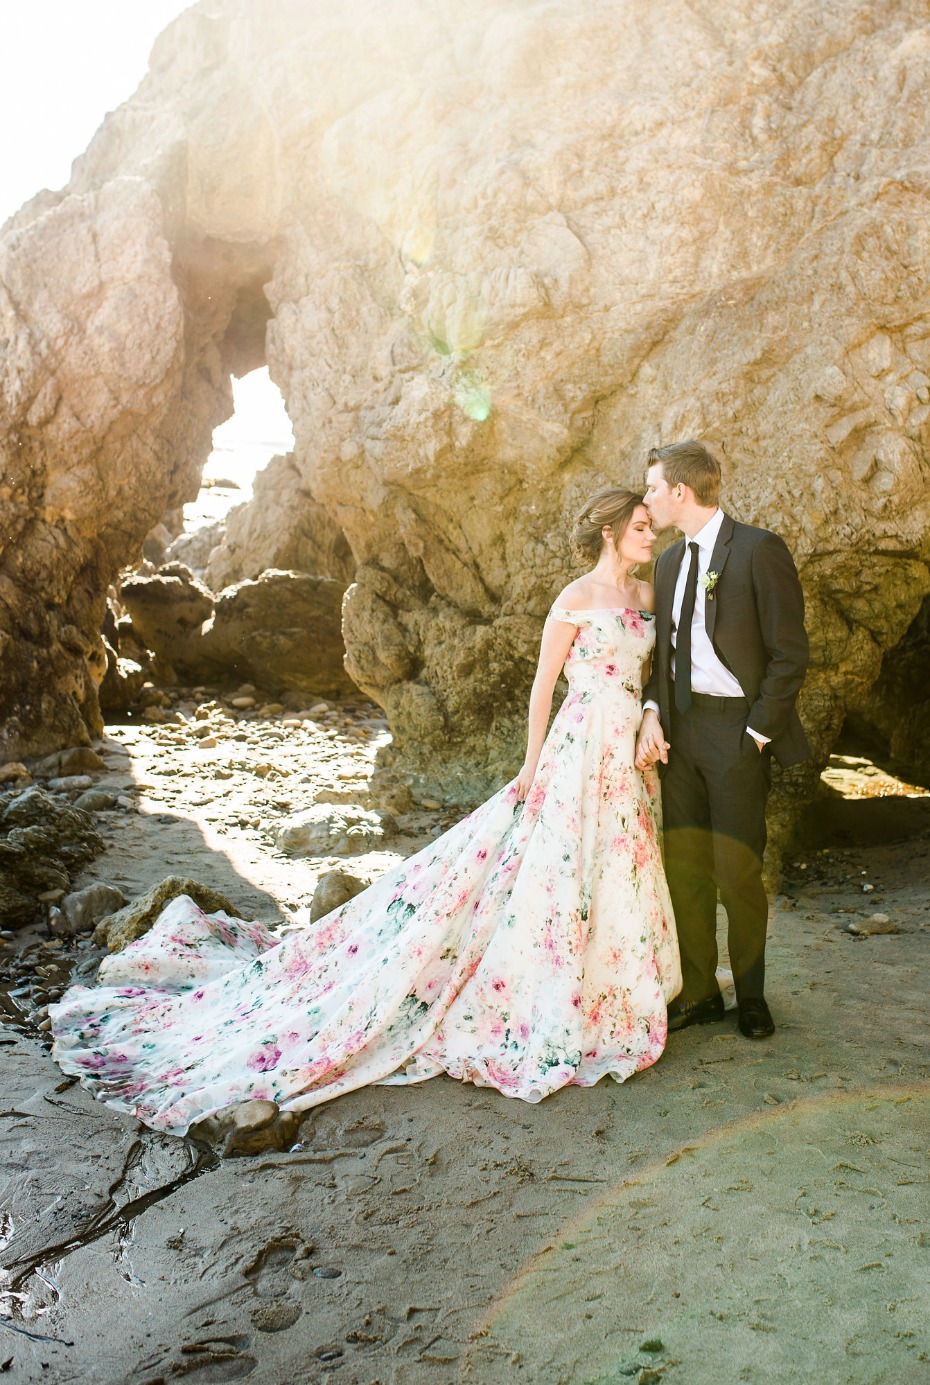 we cannot get enough of this floral print wedding dress